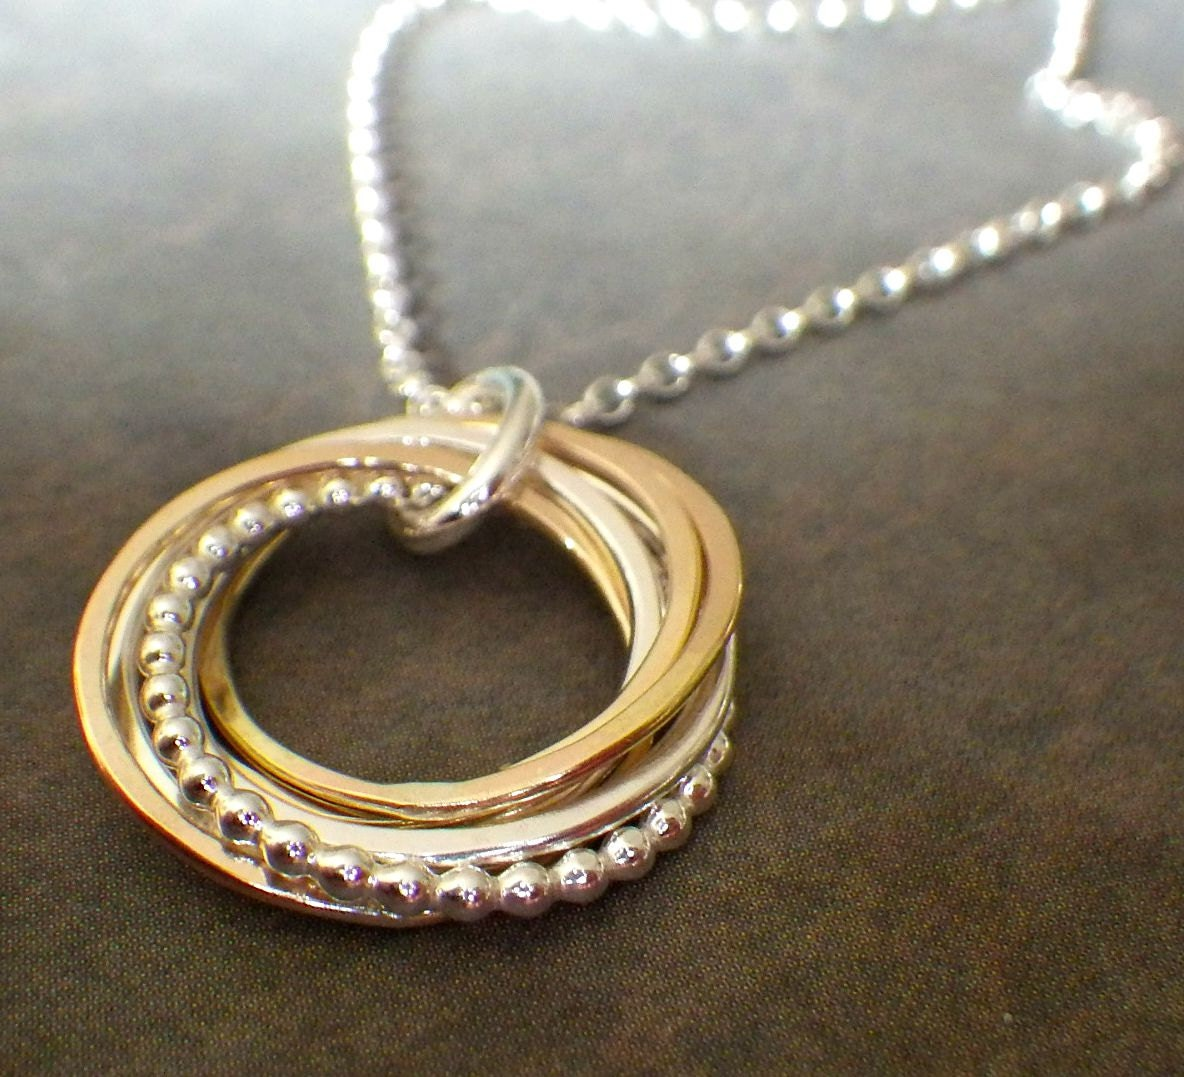 7 Rings Necklace Interlocking Rings 70th Birthday By